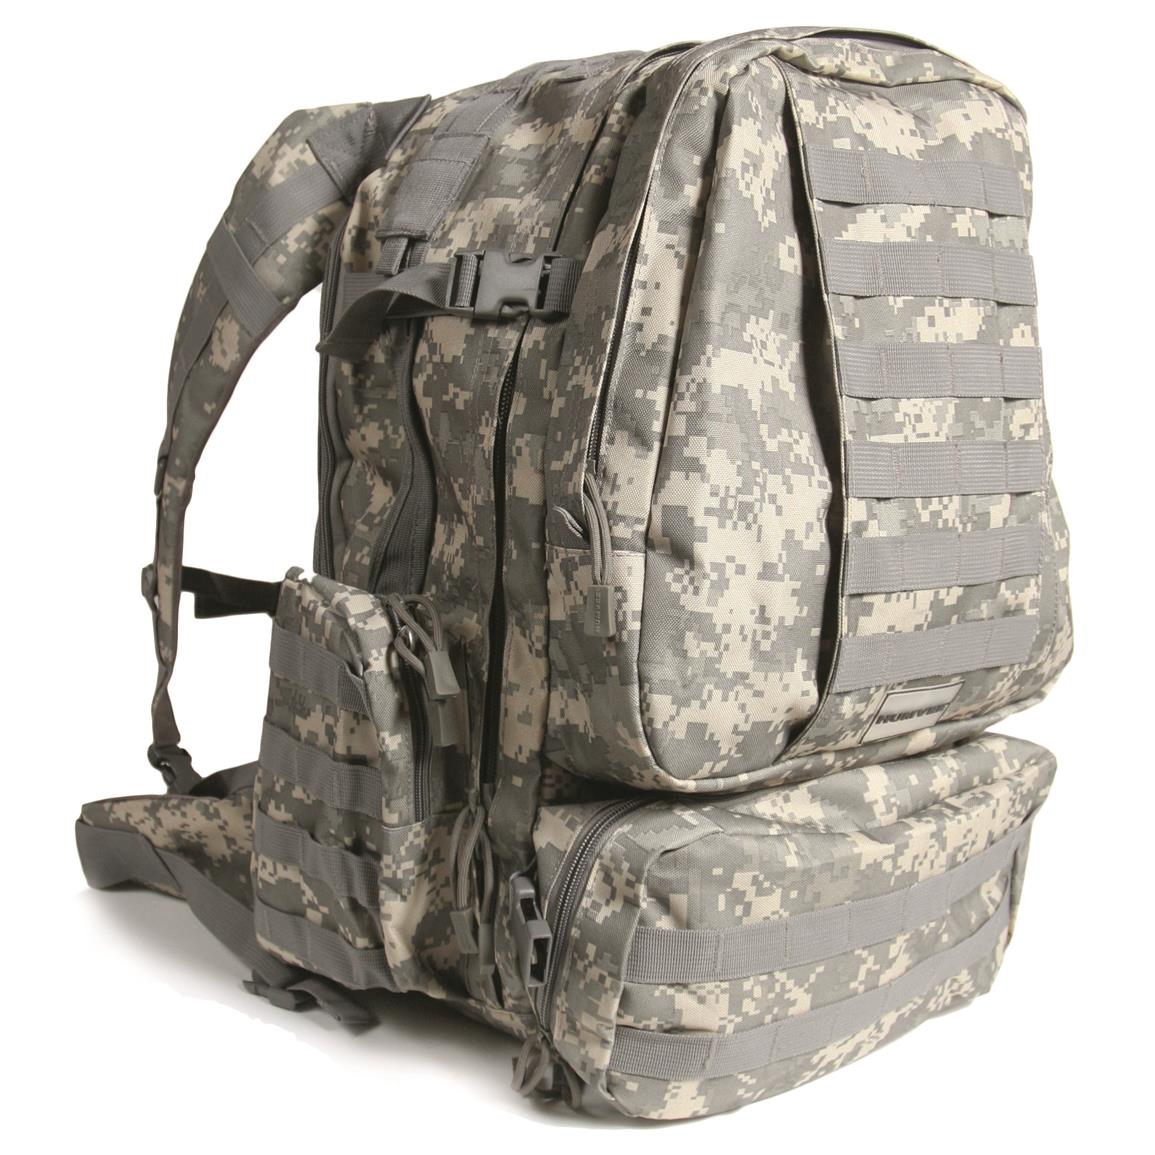 Humvee 3-Day Assault Backpack, Digital Camo, Side